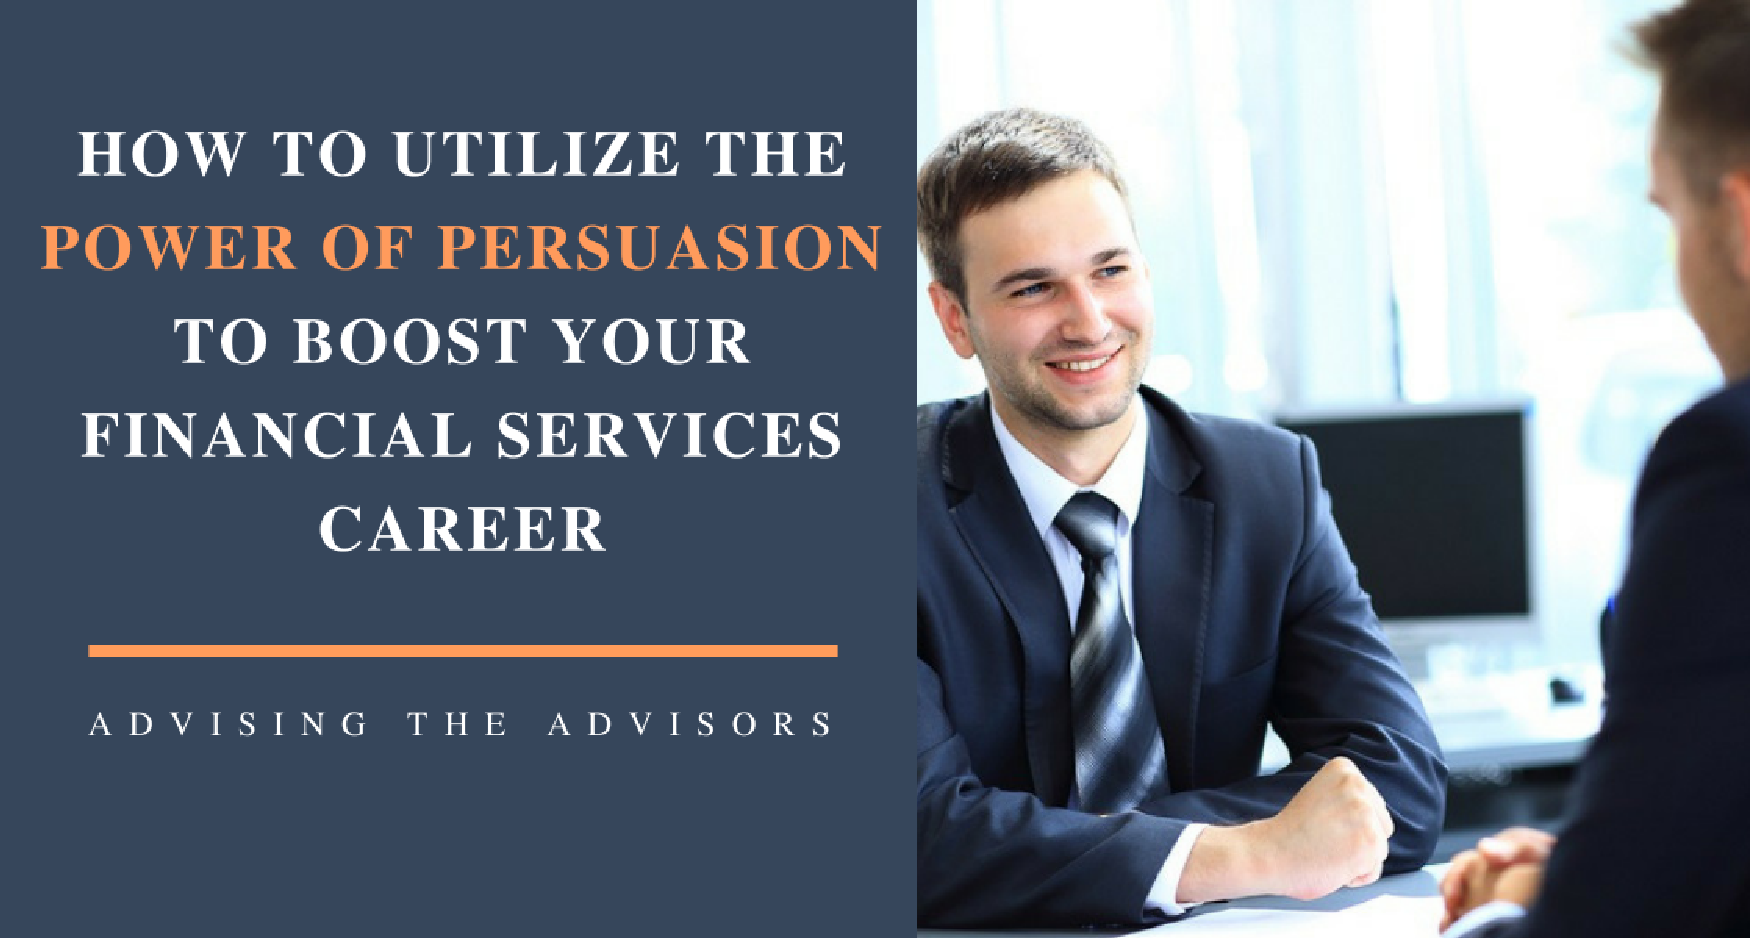 How to Utilize the Power of Persusasion to Boost Your Financial Services Career